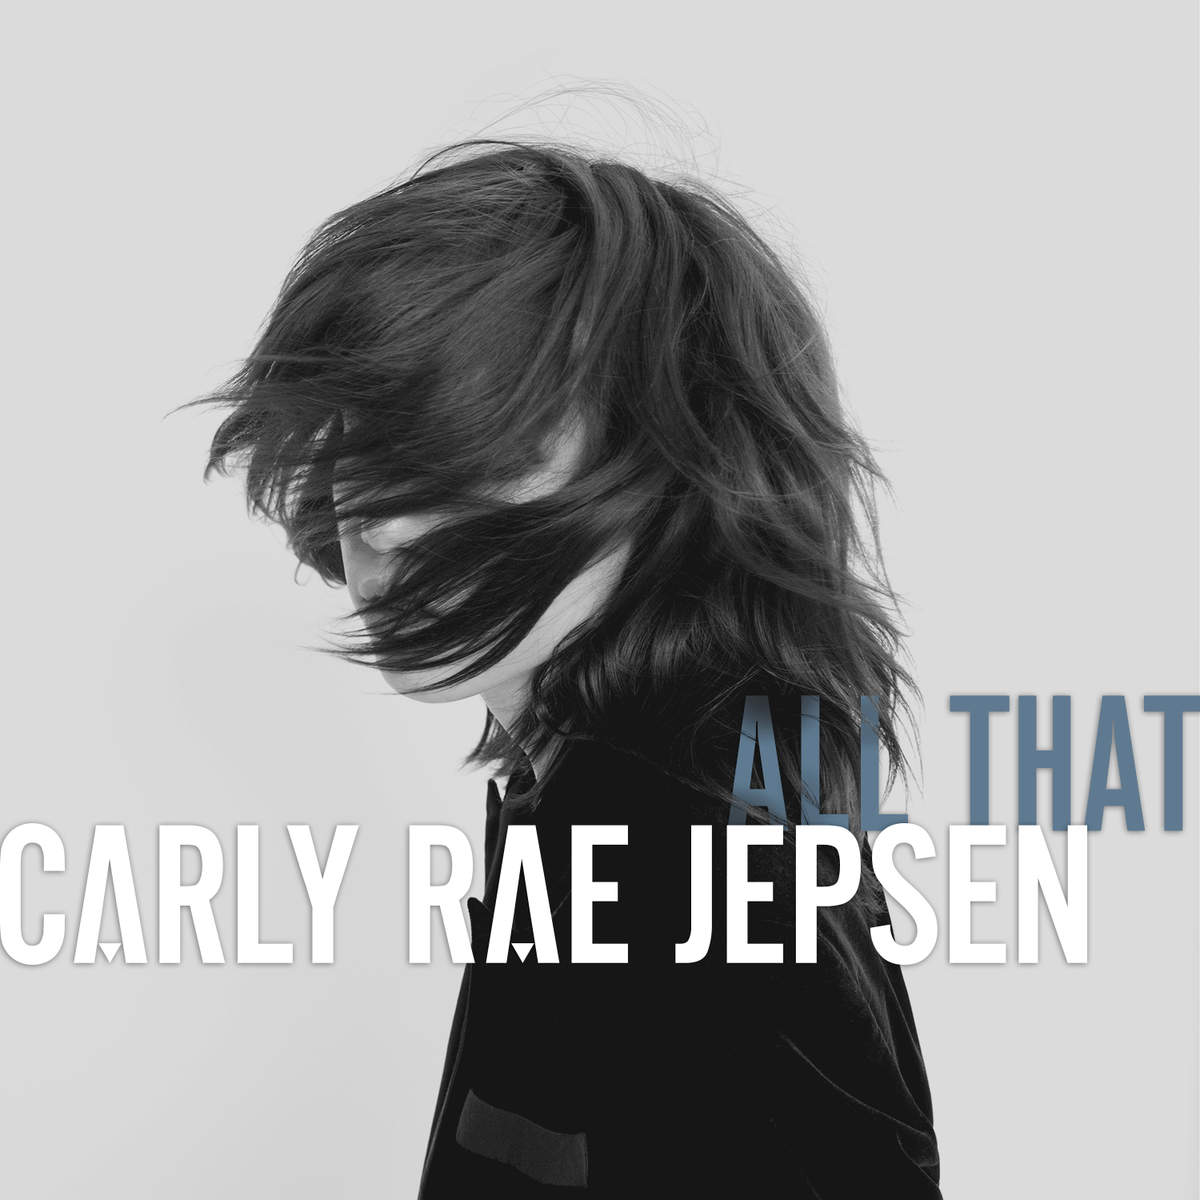 Carly Rae Jepsen – All That